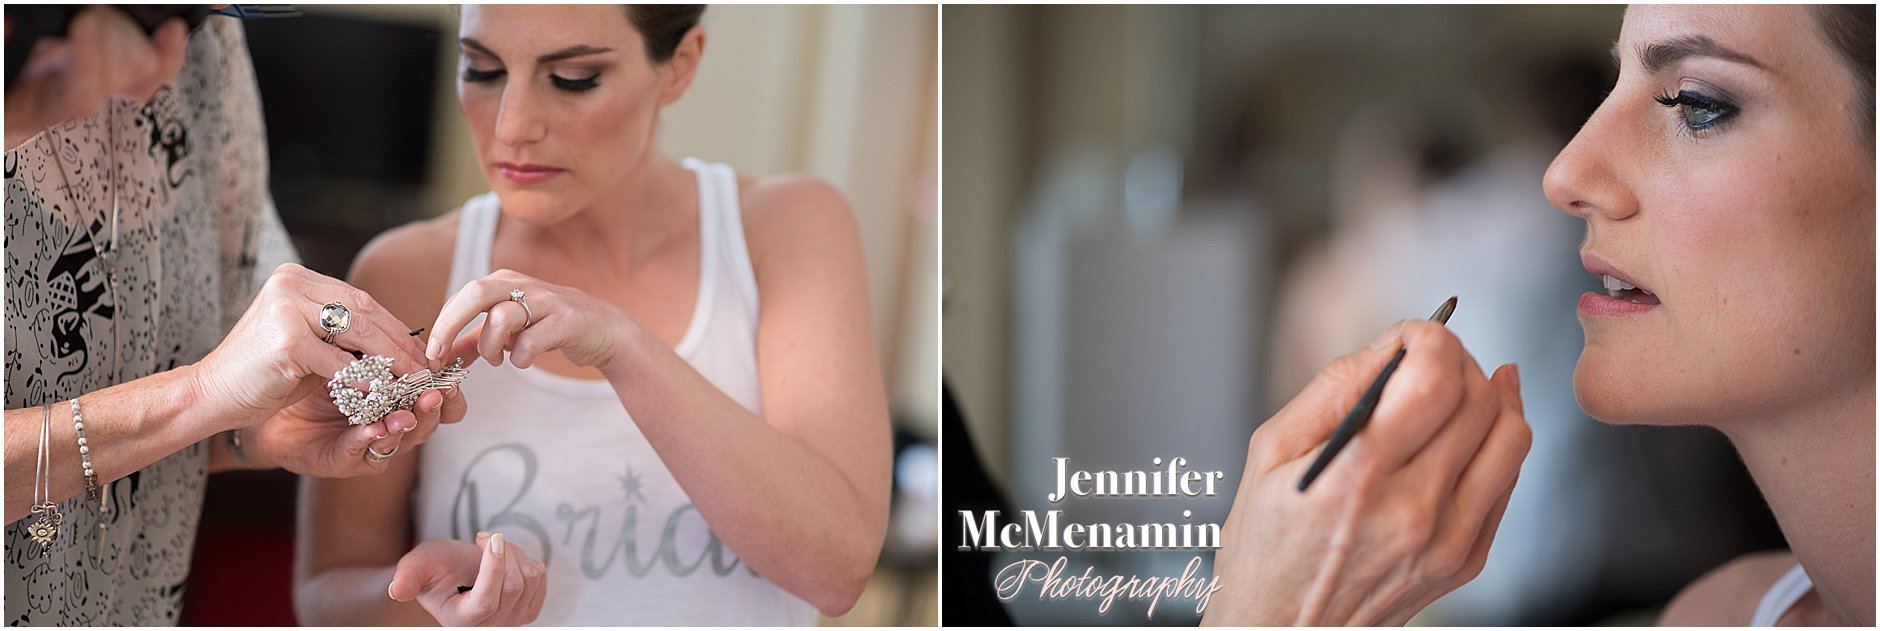 004-Jennifer-McMenamin-Photography-Baltimore-Waterfront-Marriott-wedding_0007